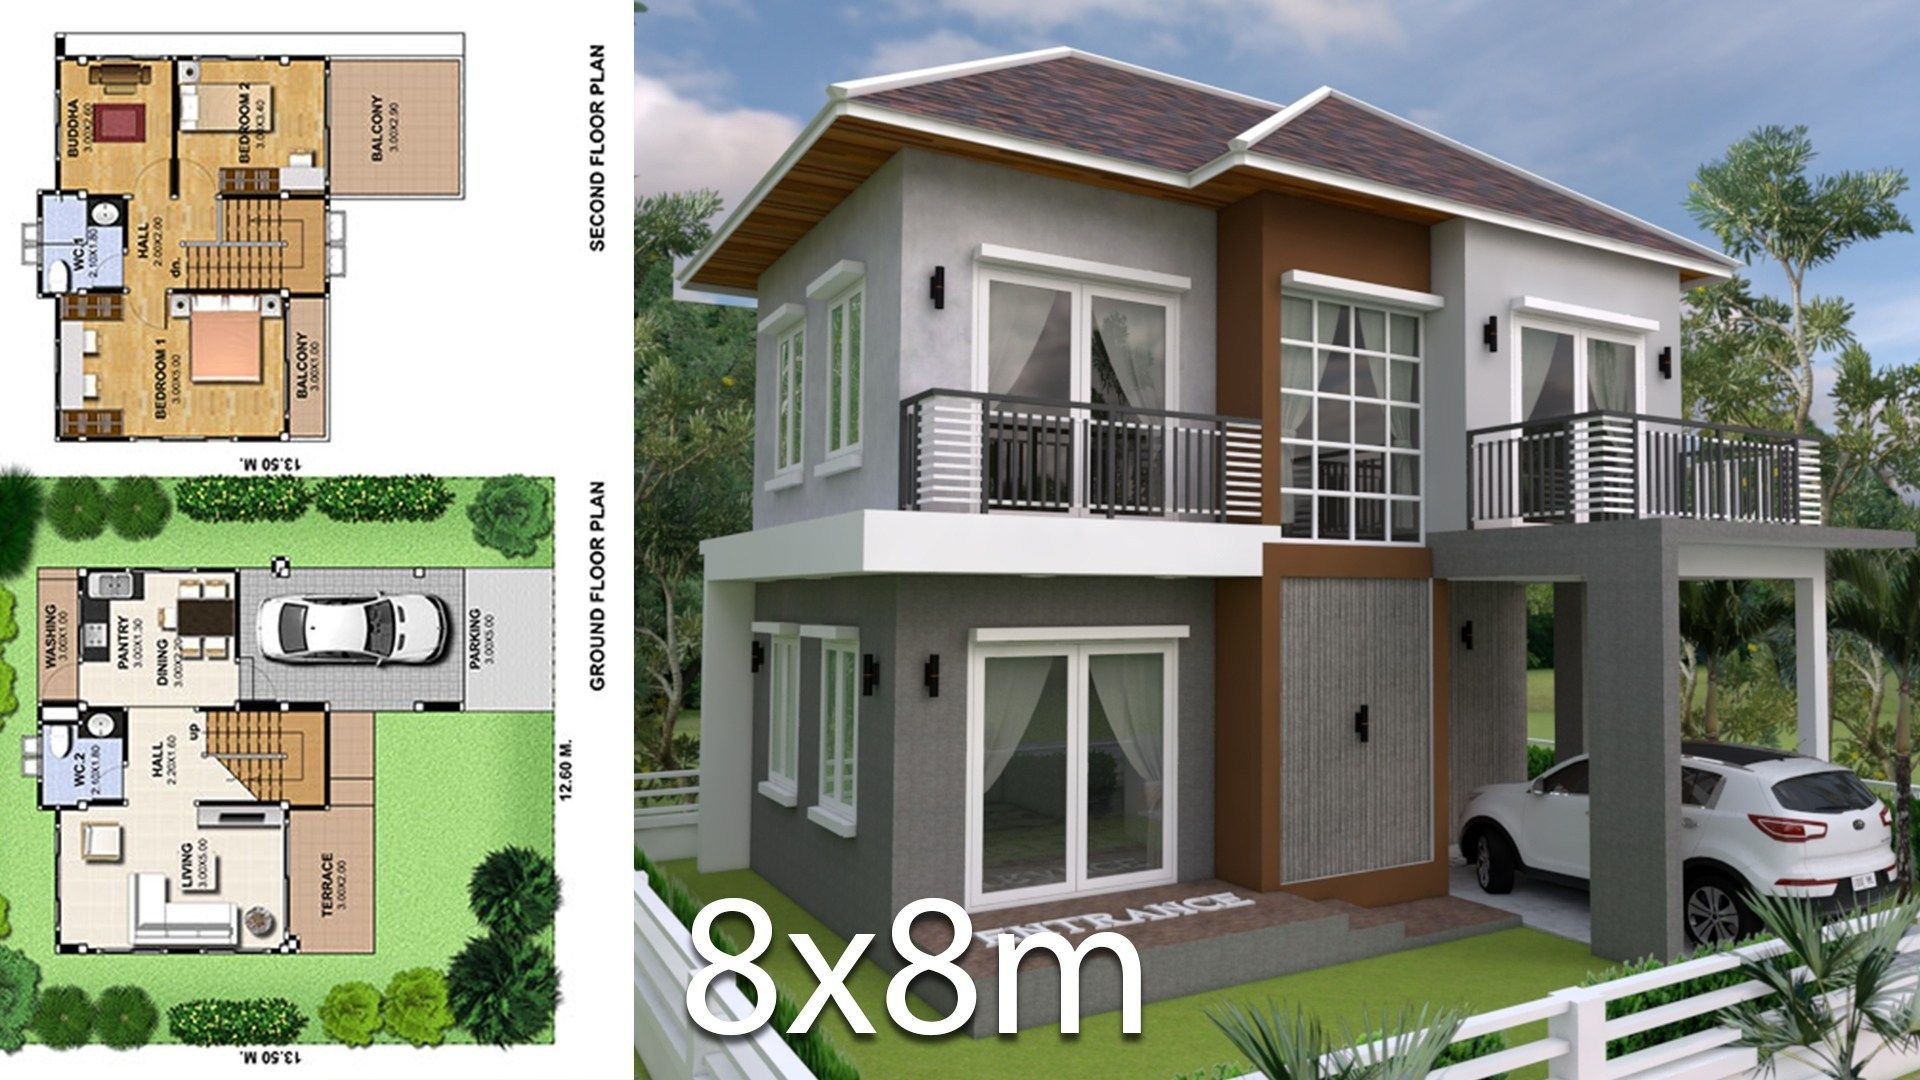 3 Bedrooms Home Plan 8x8m   House plans, House with ...